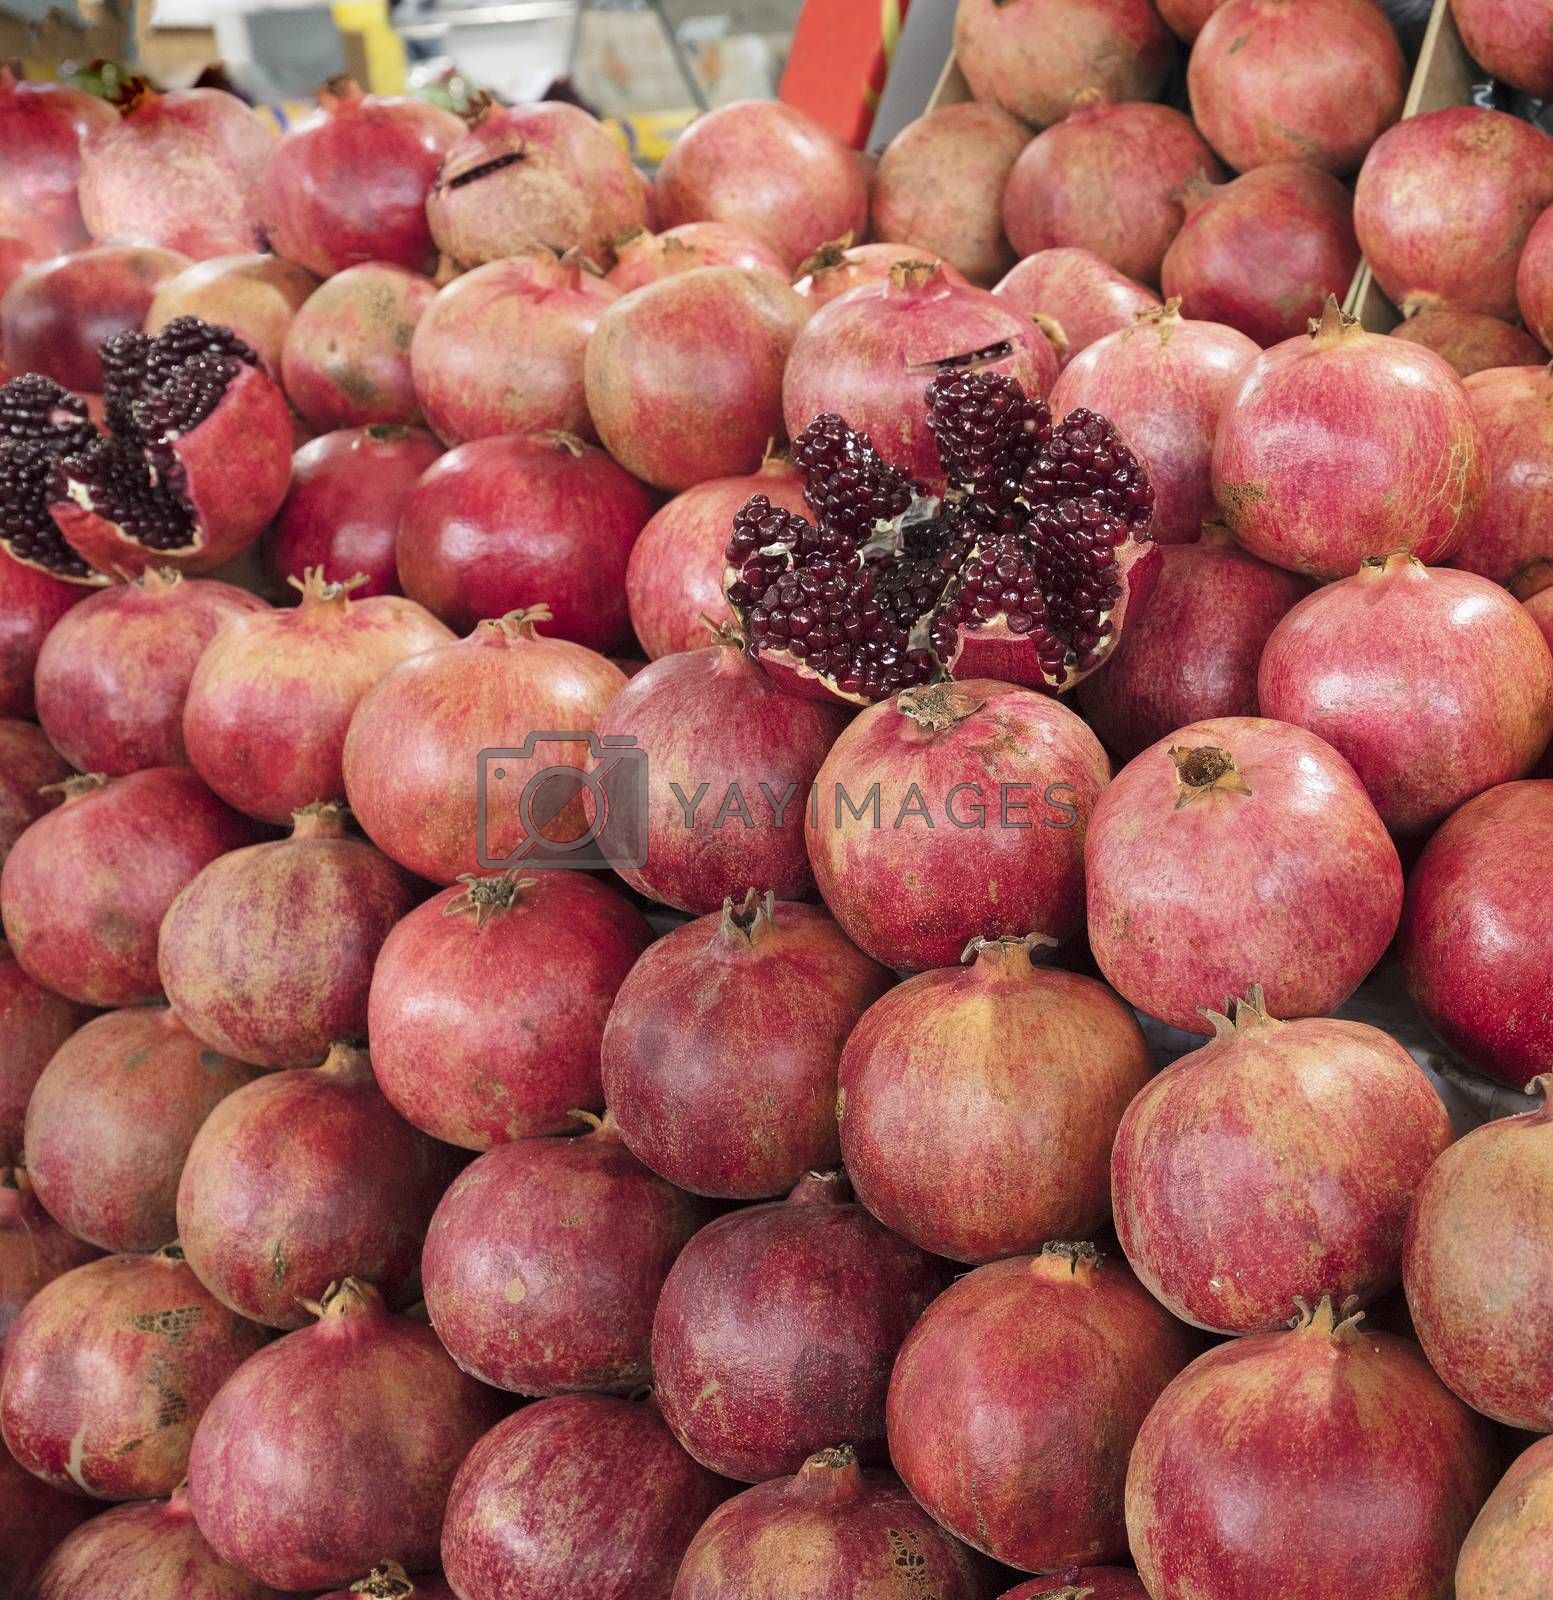 Ripe and red fruit pomegranate and divided into four parts, against the background of pomegranate fruit lined in rows